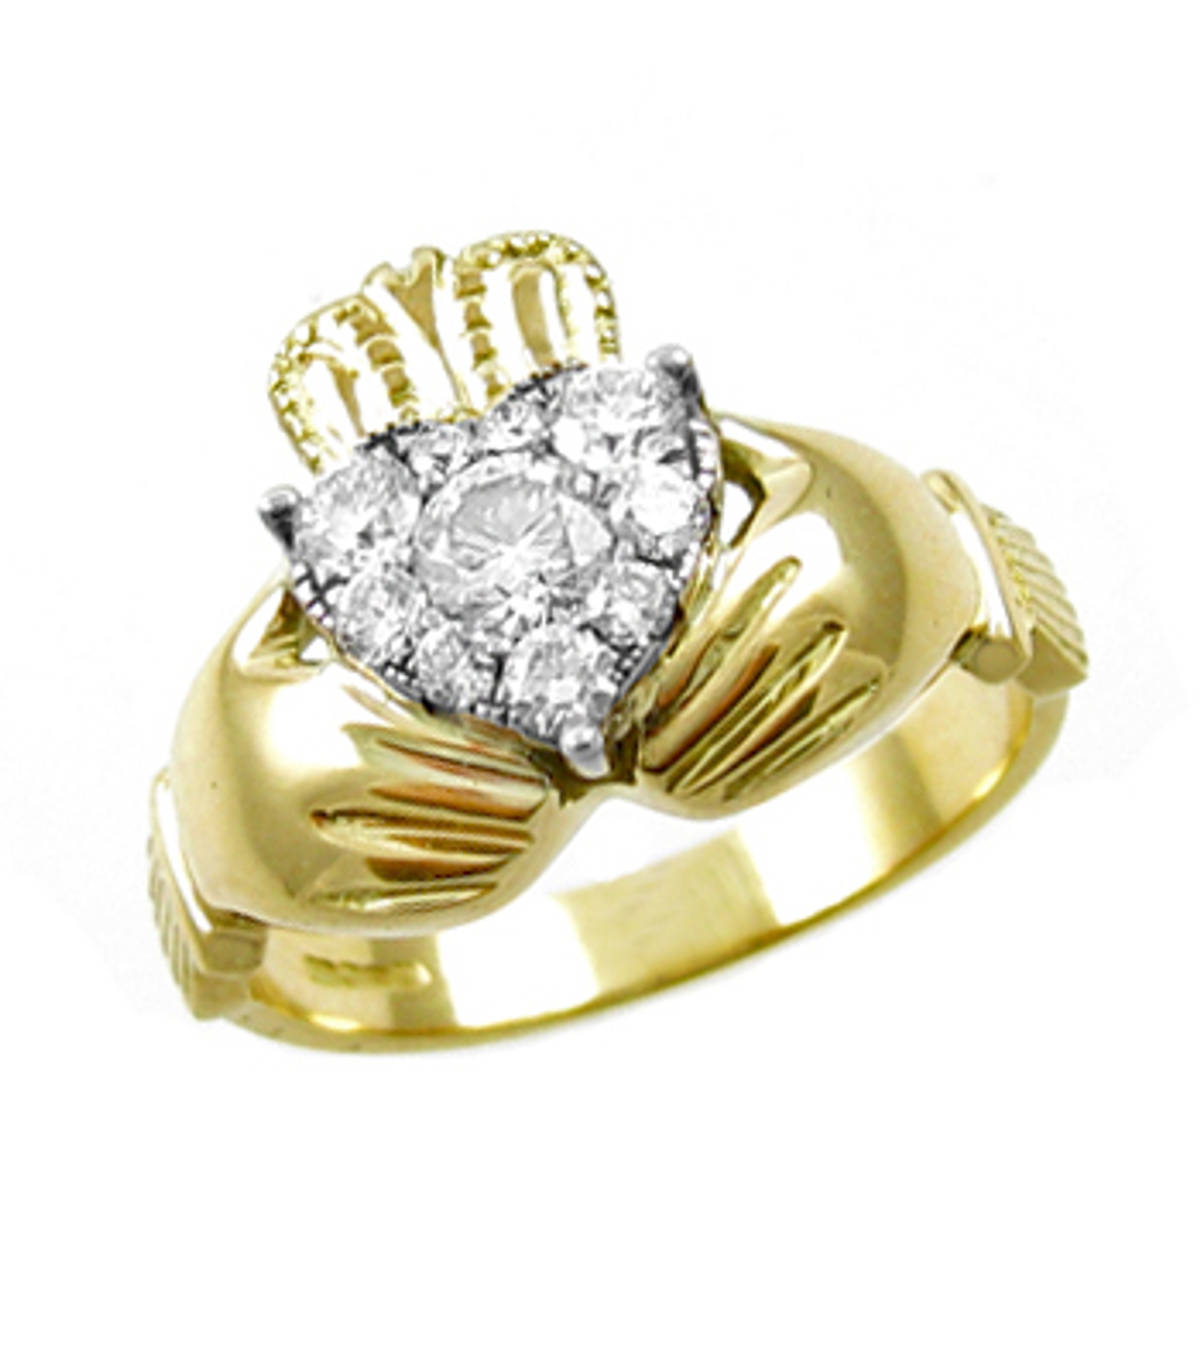 14 carat yellow gold 0.24cts/0.30cts diamonds claddagh engagement ring